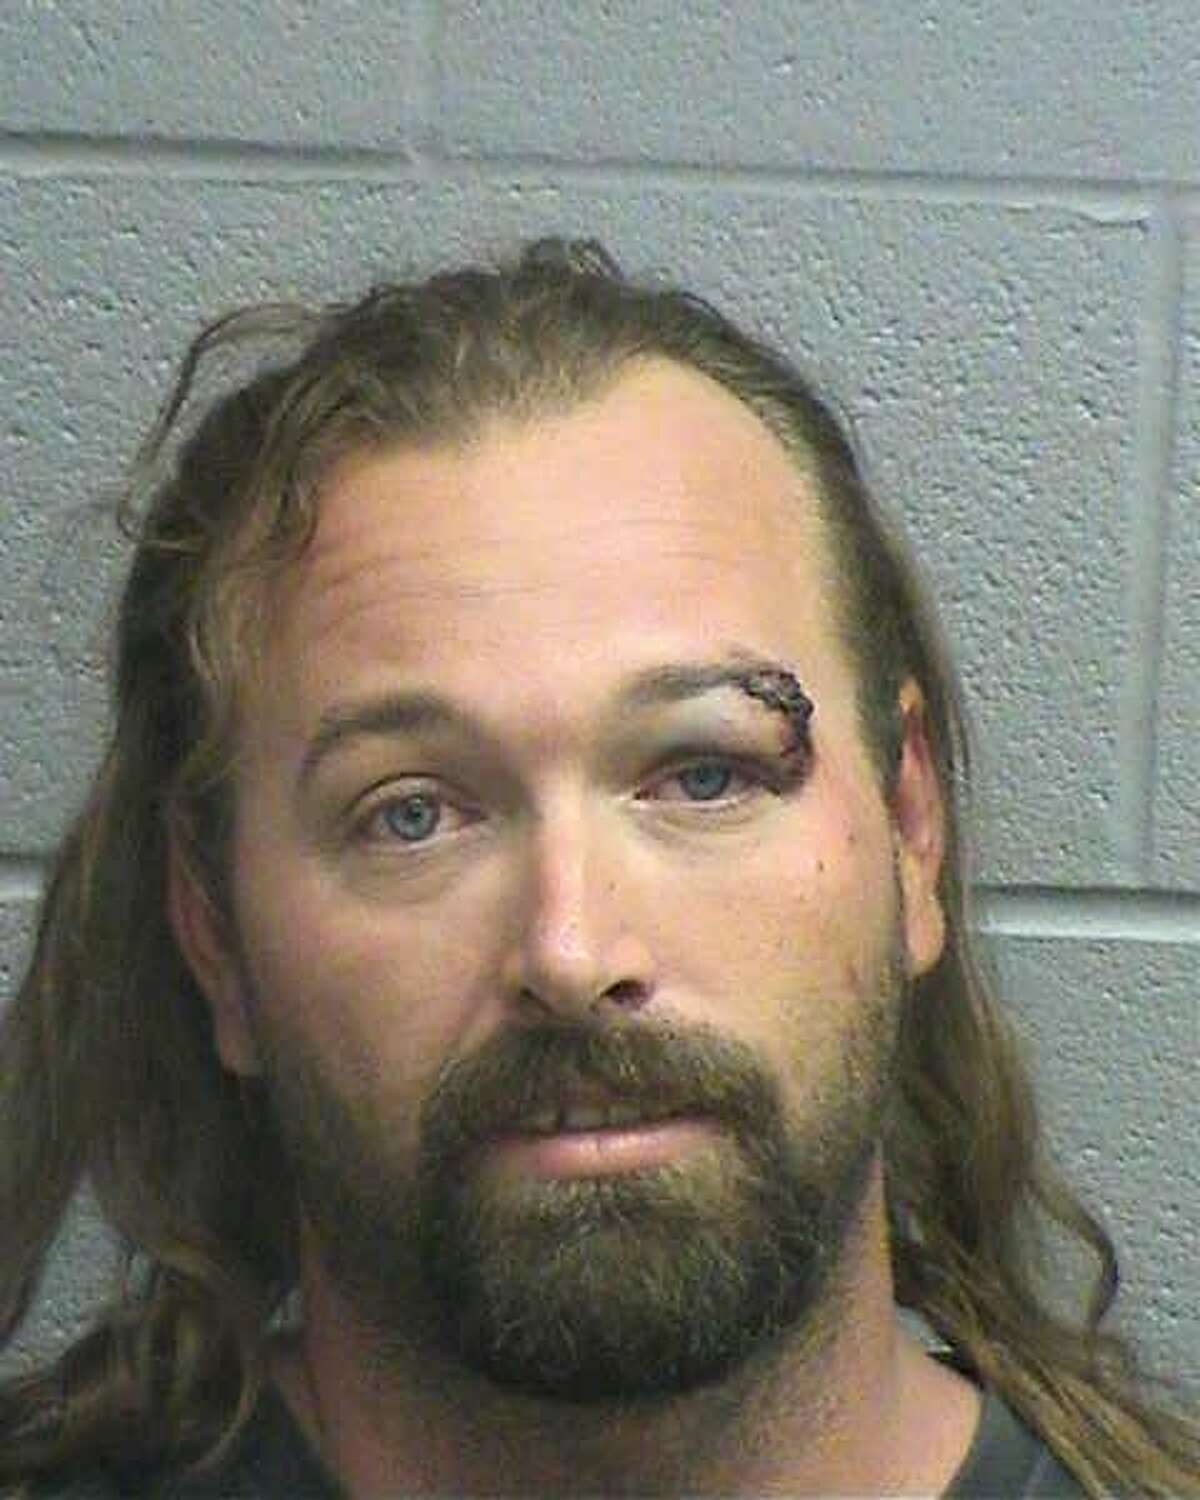 Jamie Dwayne Mork, 39, of Brady, was charged June 18 with a state jail felony charge of criminal mischief between $1,500 and $20,000 and a class B misdemeanor charge of driving while intoxicated. Mork smoked methamphetamine and drove into a transformer at a credit union in order to get the attention of the police. He caused between $3,500 and $7,000 in damages, according to the arrest affidavit. If convicted, Mork faces up to two years in prison for the felony.